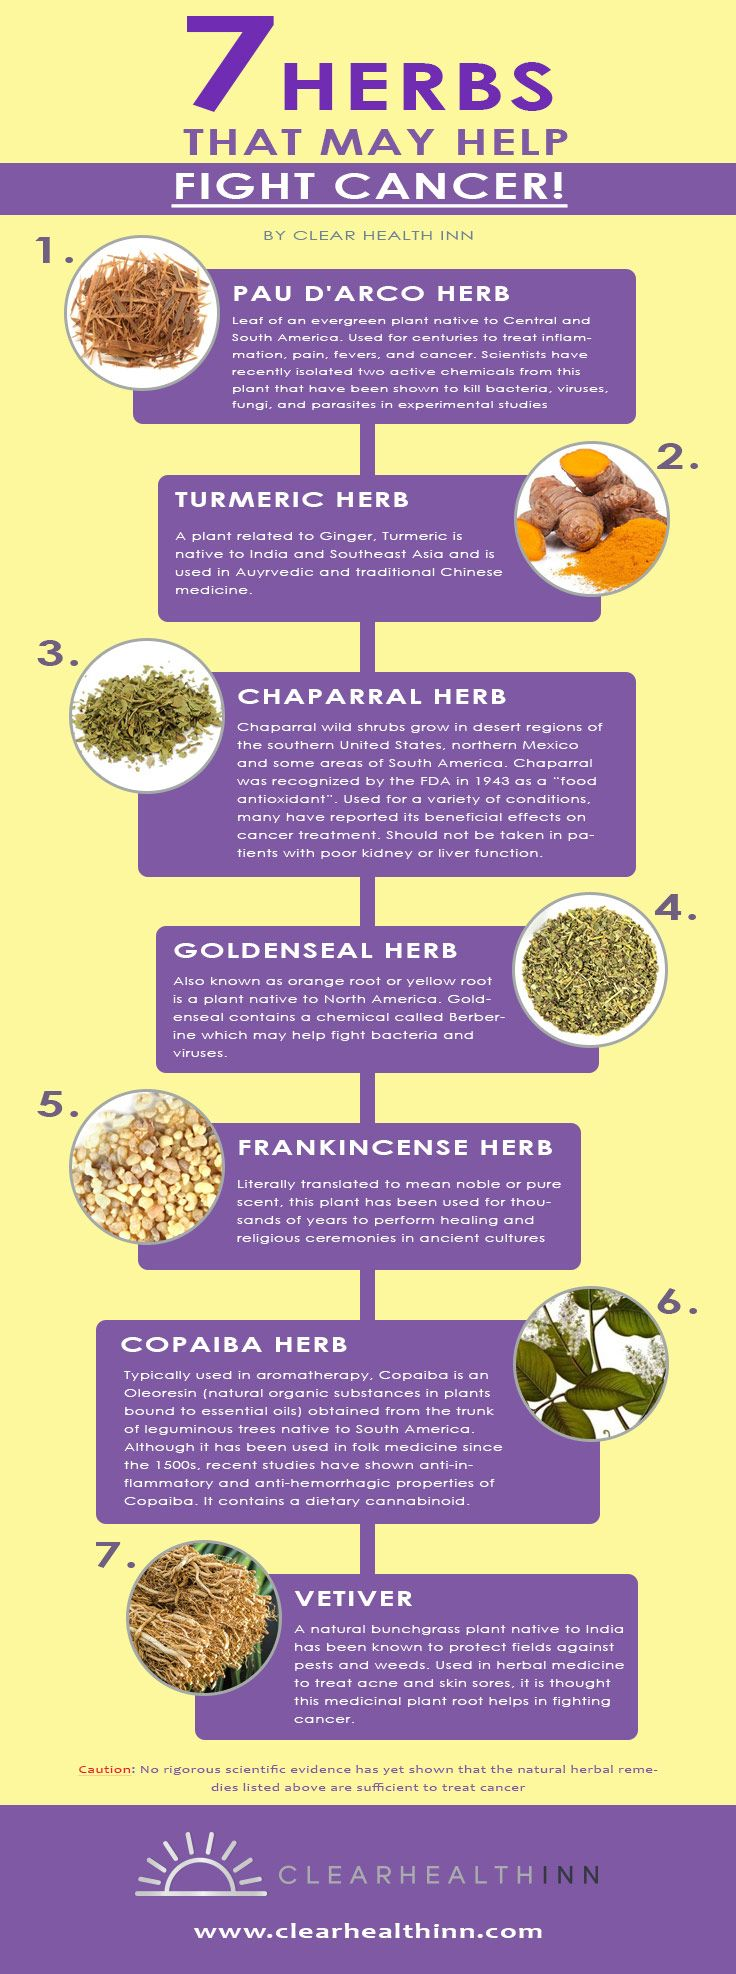 Clear Health Inn's 7 Herbs That May Help Fight Cancer. Herbal medicine is a very common choice as a complementary therapy for those who suffer with cancer. In reality, modern medicines in use today use components that originally hail from naturally occurring herbs. There is some evidence that herbal products can help to prevent or relieve some symptoms of cancer and the side effects of treatment. #FightCancer #Cancer #HerbalMedicine #AlternativeCancer #ClearHealthInn #Canada